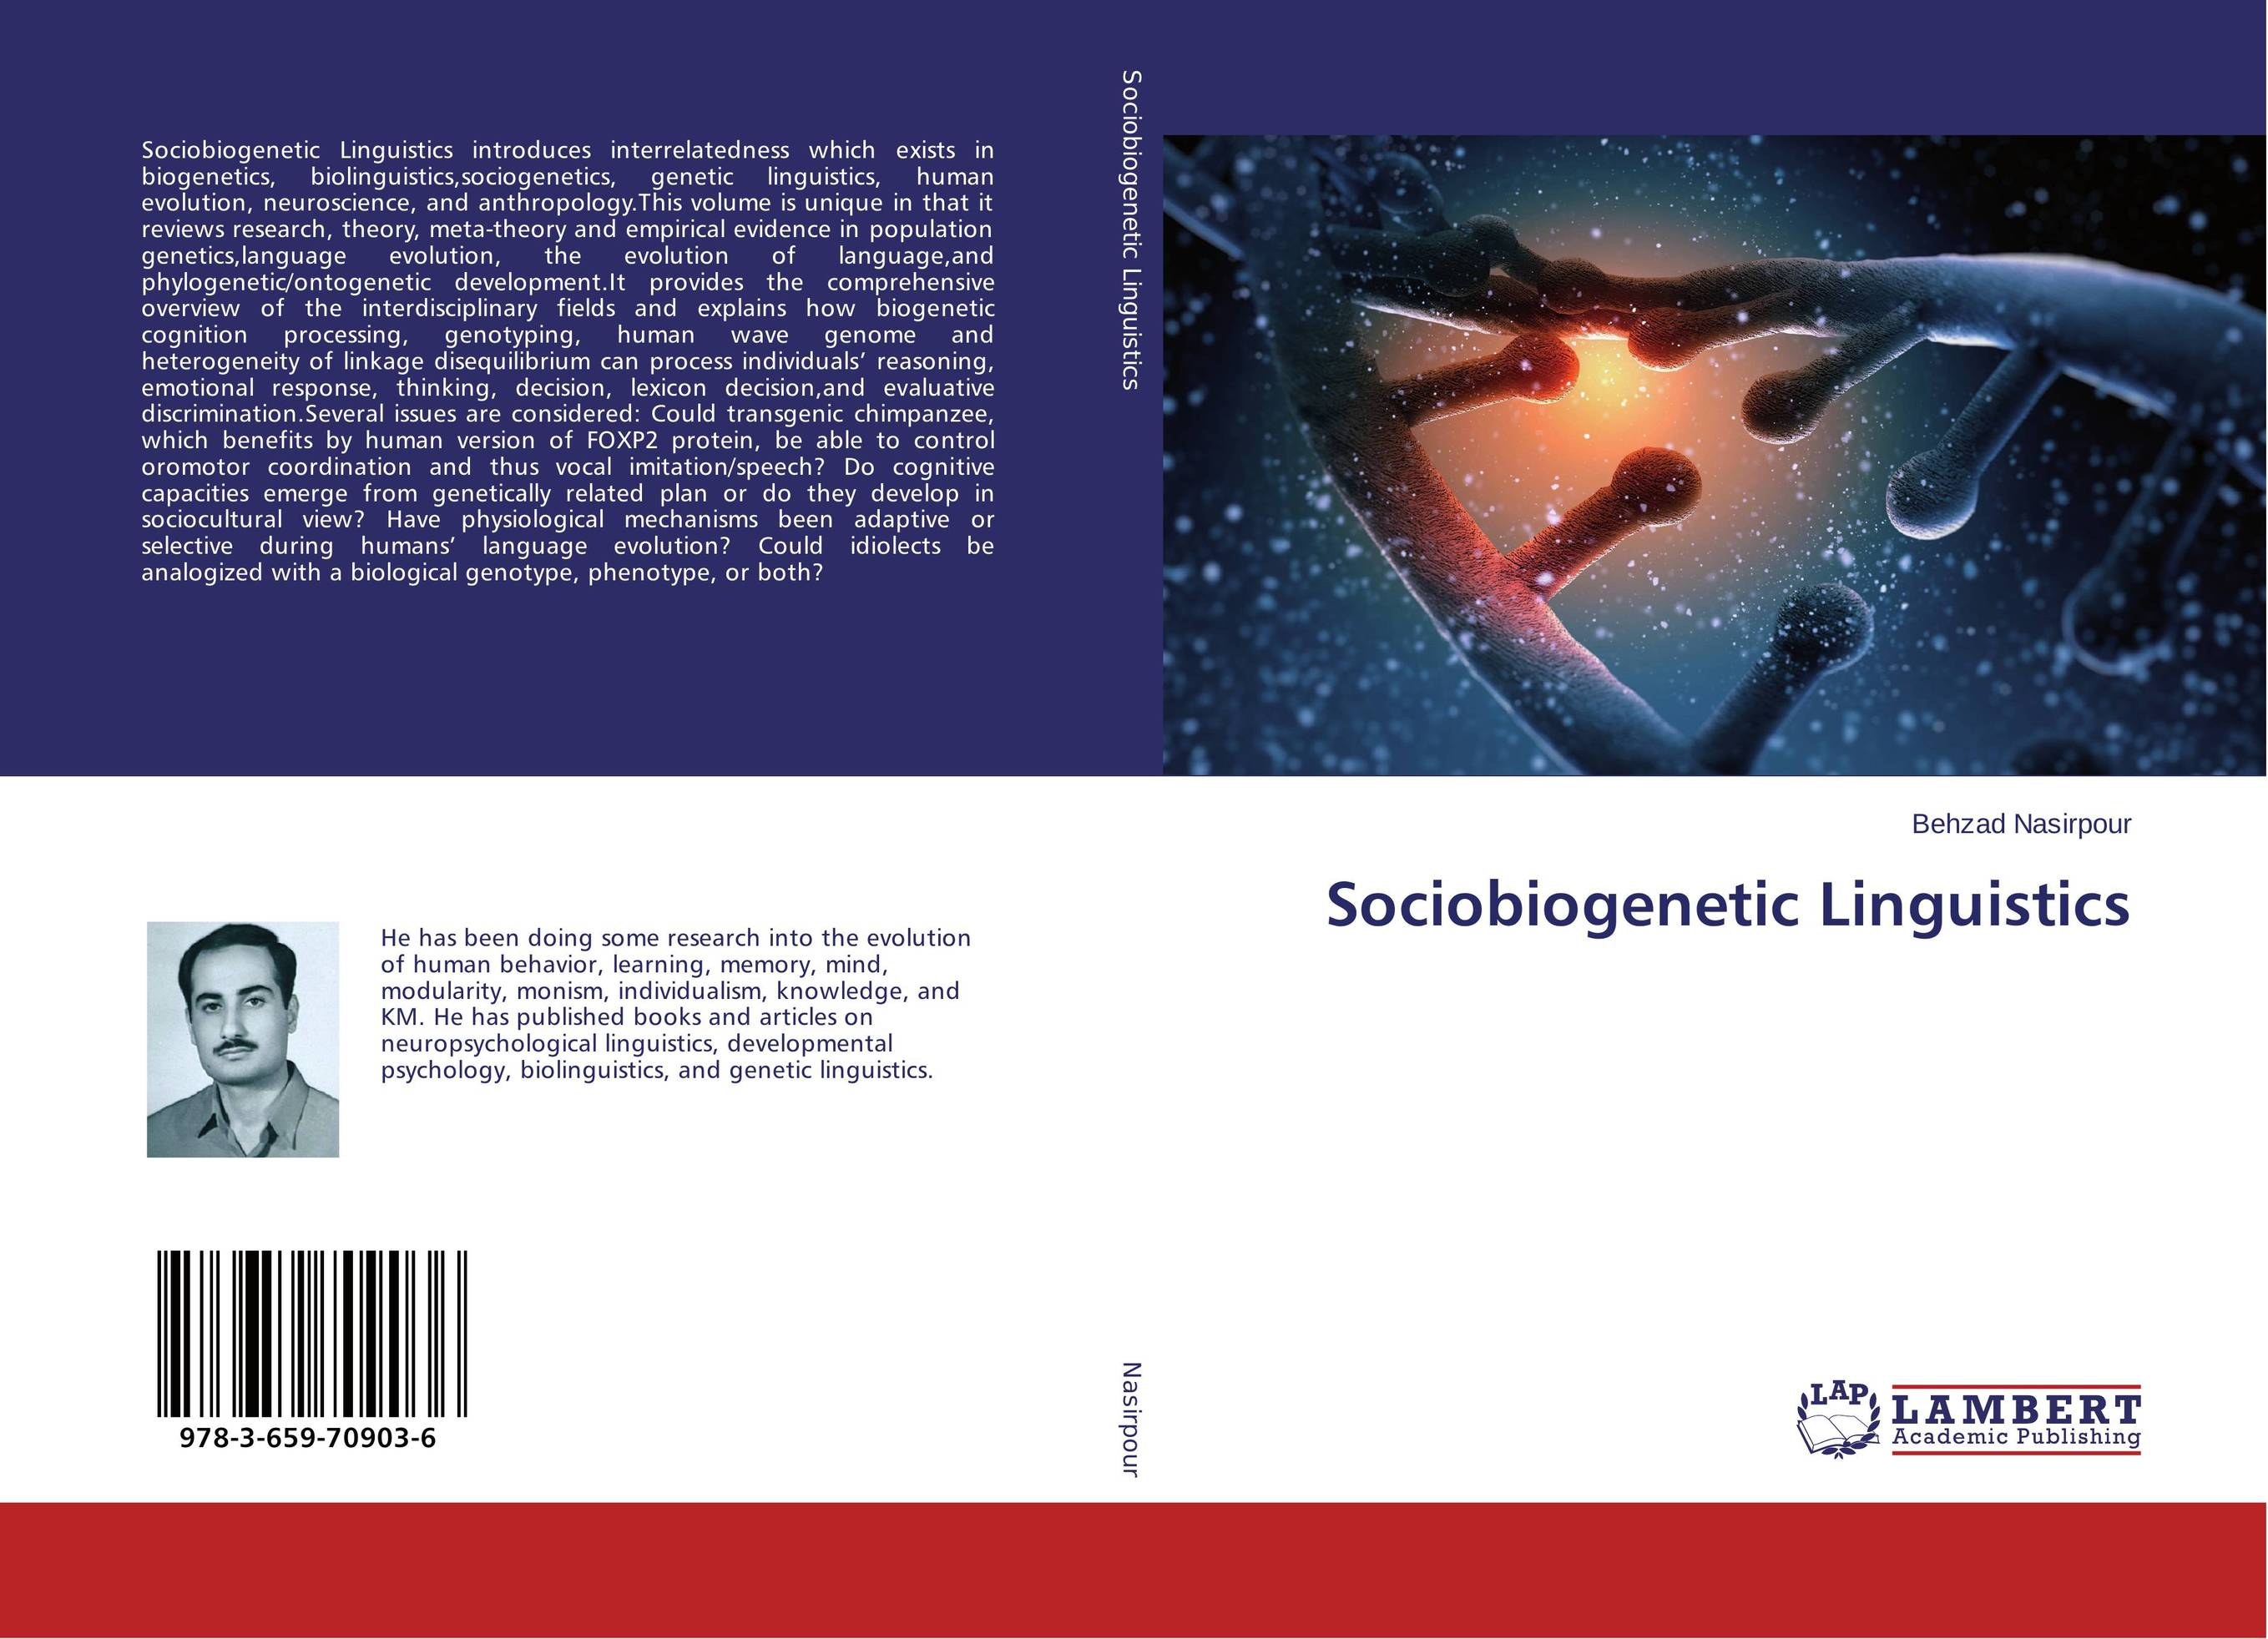 Sociobiogenetic Linguistics blog theory